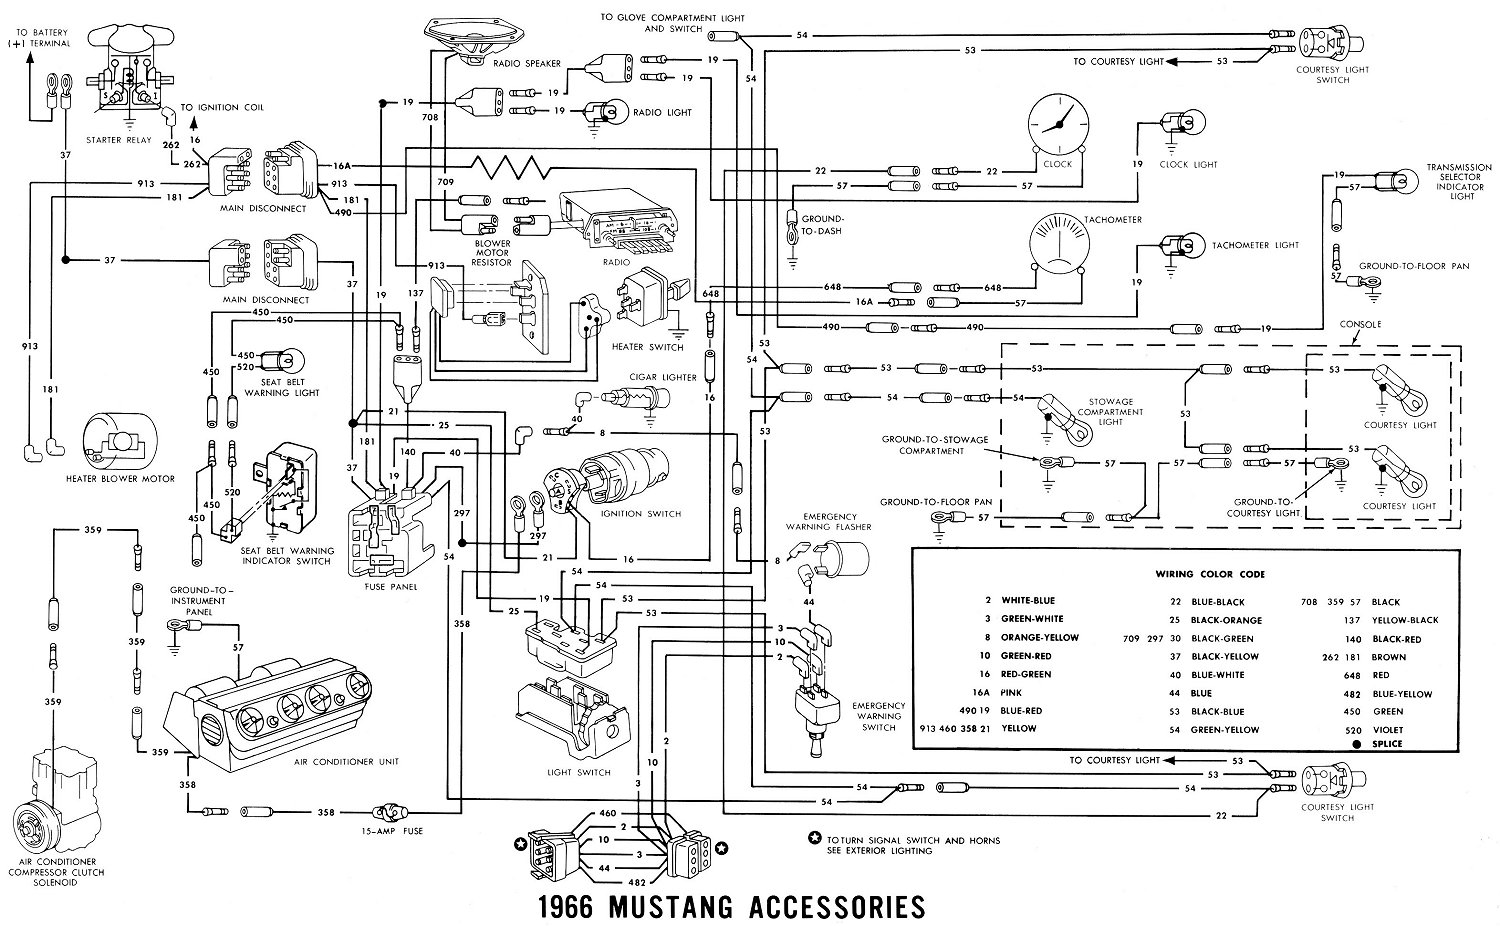 66acces1 1966 mustang wiring diagram 1967 mustang wiring schematic \u2022 wiring engine wiring diagram 1967 mustang v8 at mifinder.co